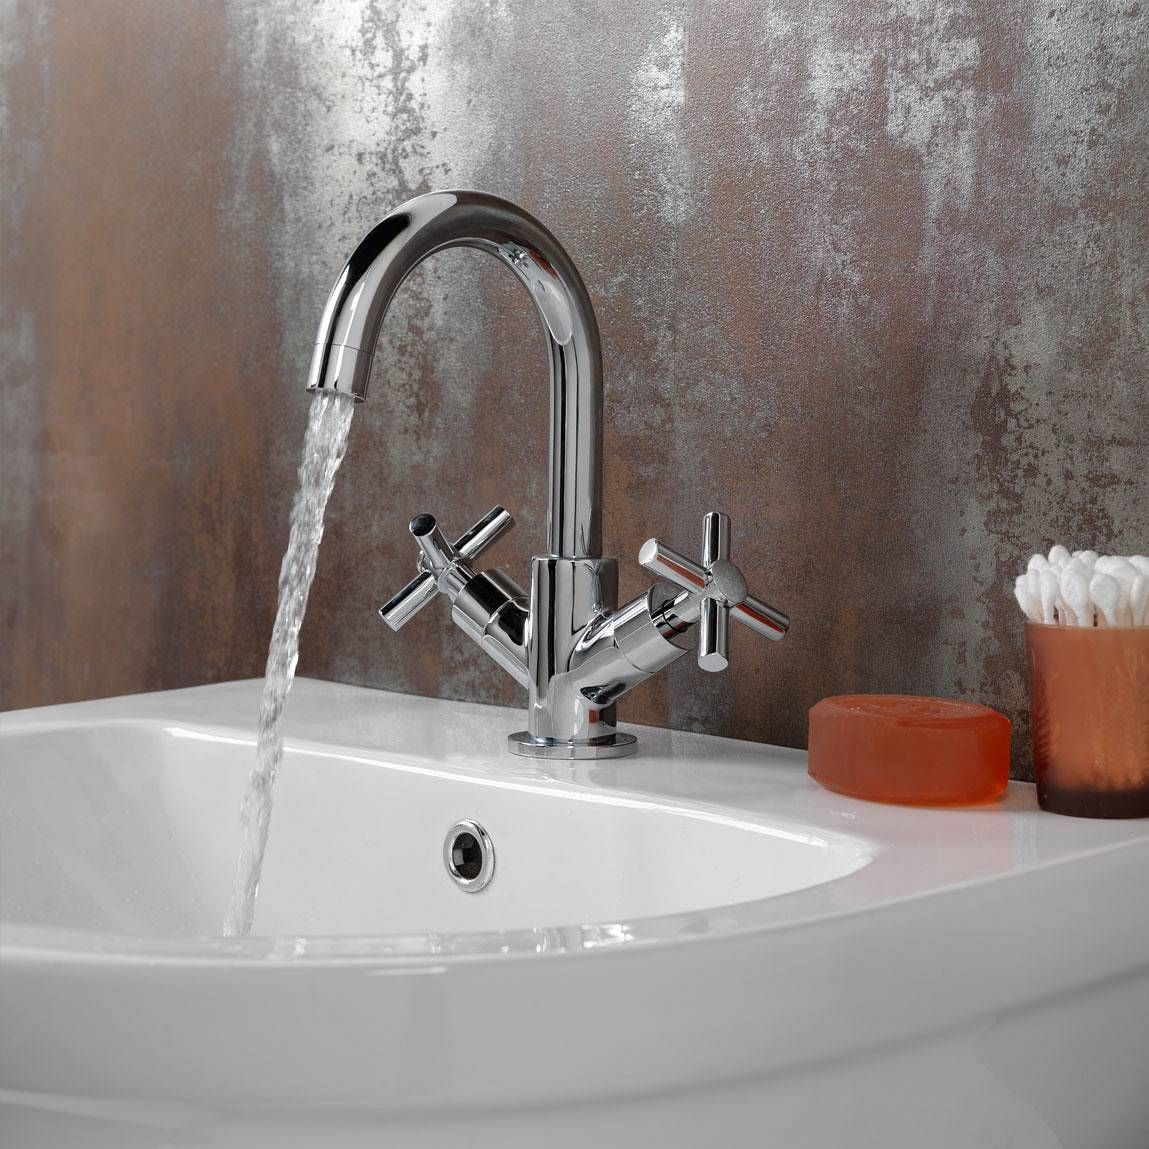 Bathroom Accessories Victoria Plumb alexa basin mixer : alexa bathroom tap range : victoria plumb